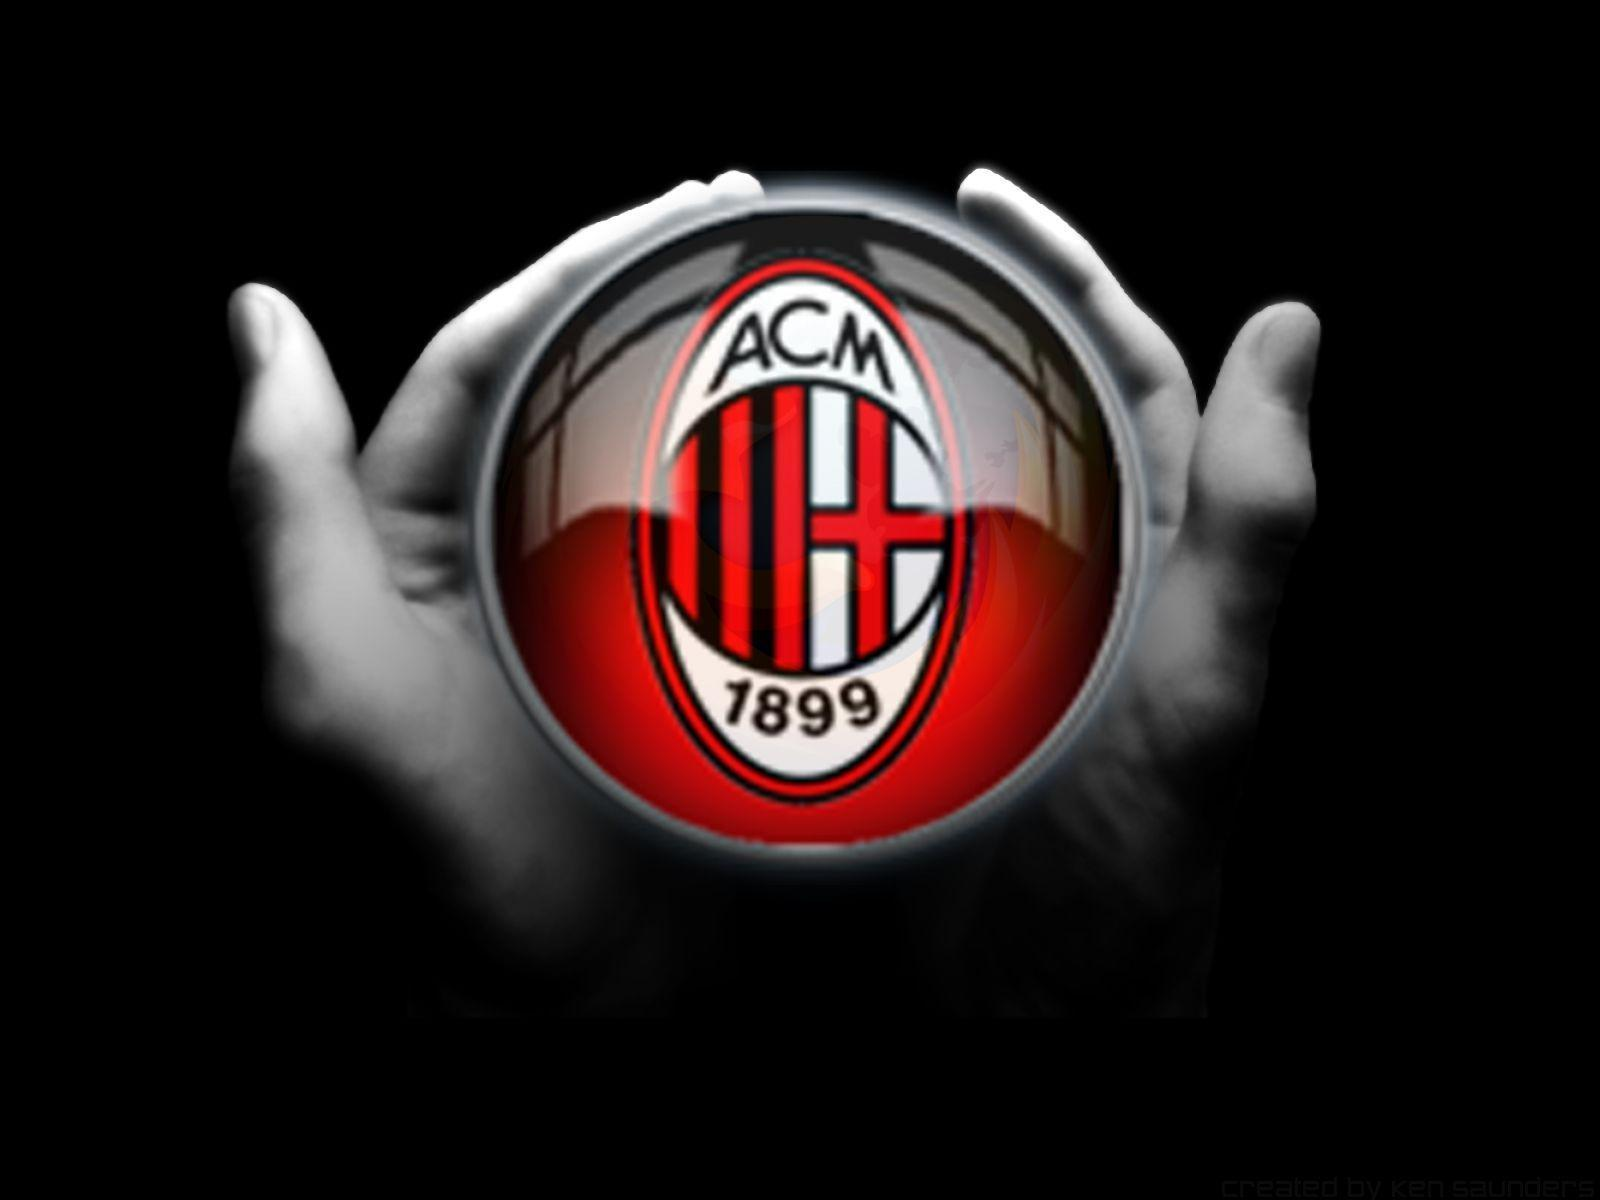 ac milan wallpapers wallpaper cave. Black Bedroom Furniture Sets. Home Design Ideas